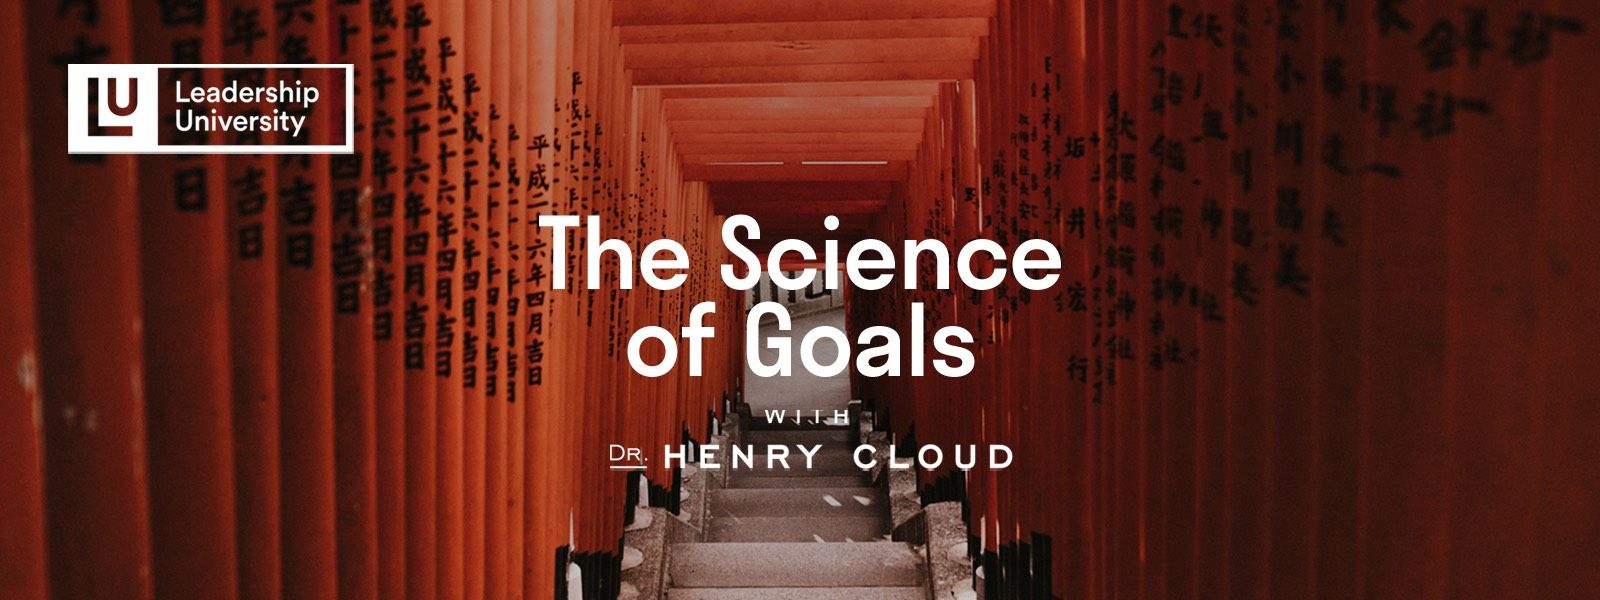 The Science of Goals